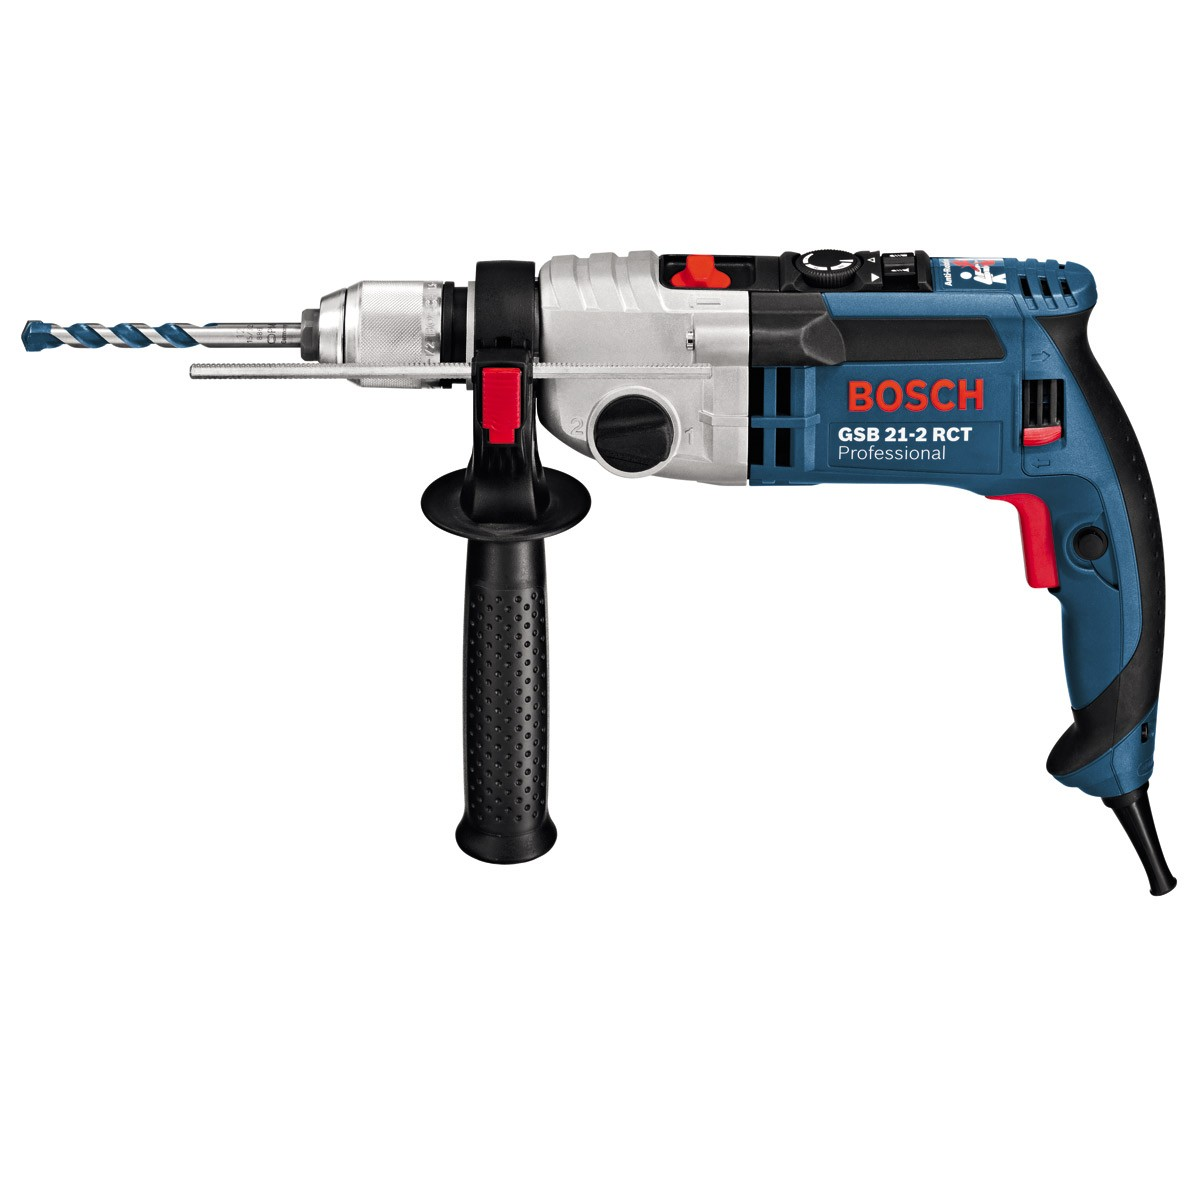 bosch gsb 21 2 rct two speed 1300w impact percussion drill 240v powertool world. Black Bedroom Furniture Sets. Home Design Ideas